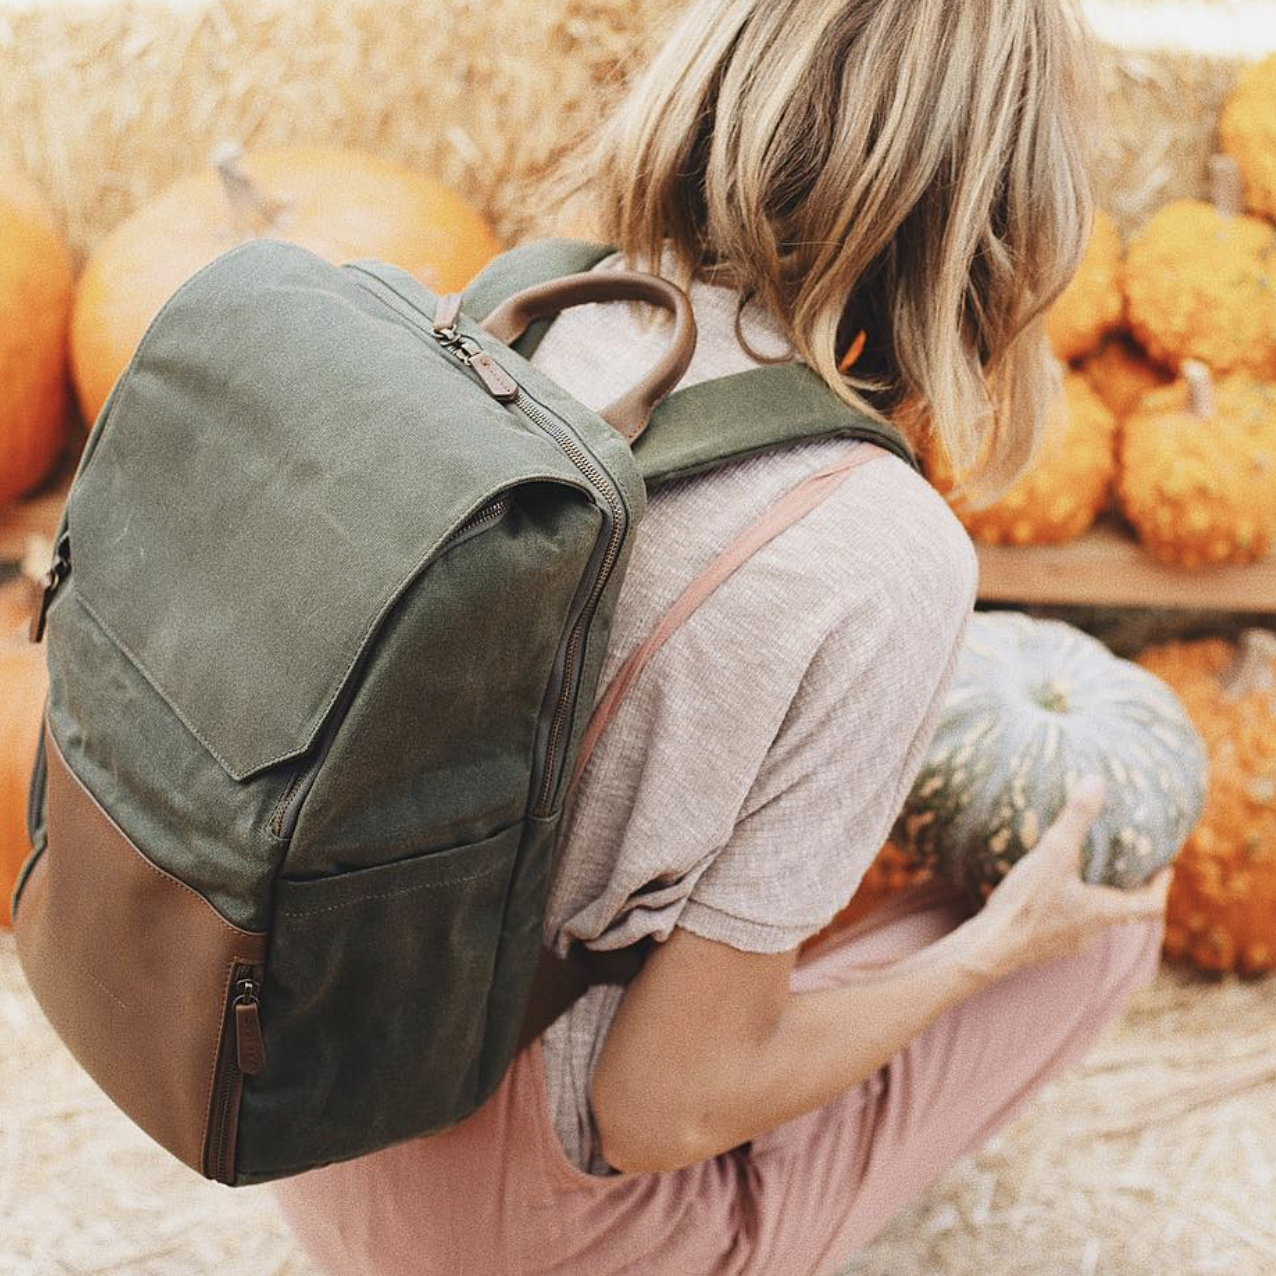 A blonde woman wearing an olive green backpack squatting down to pick up a green pumpkin at a pumpkin patch